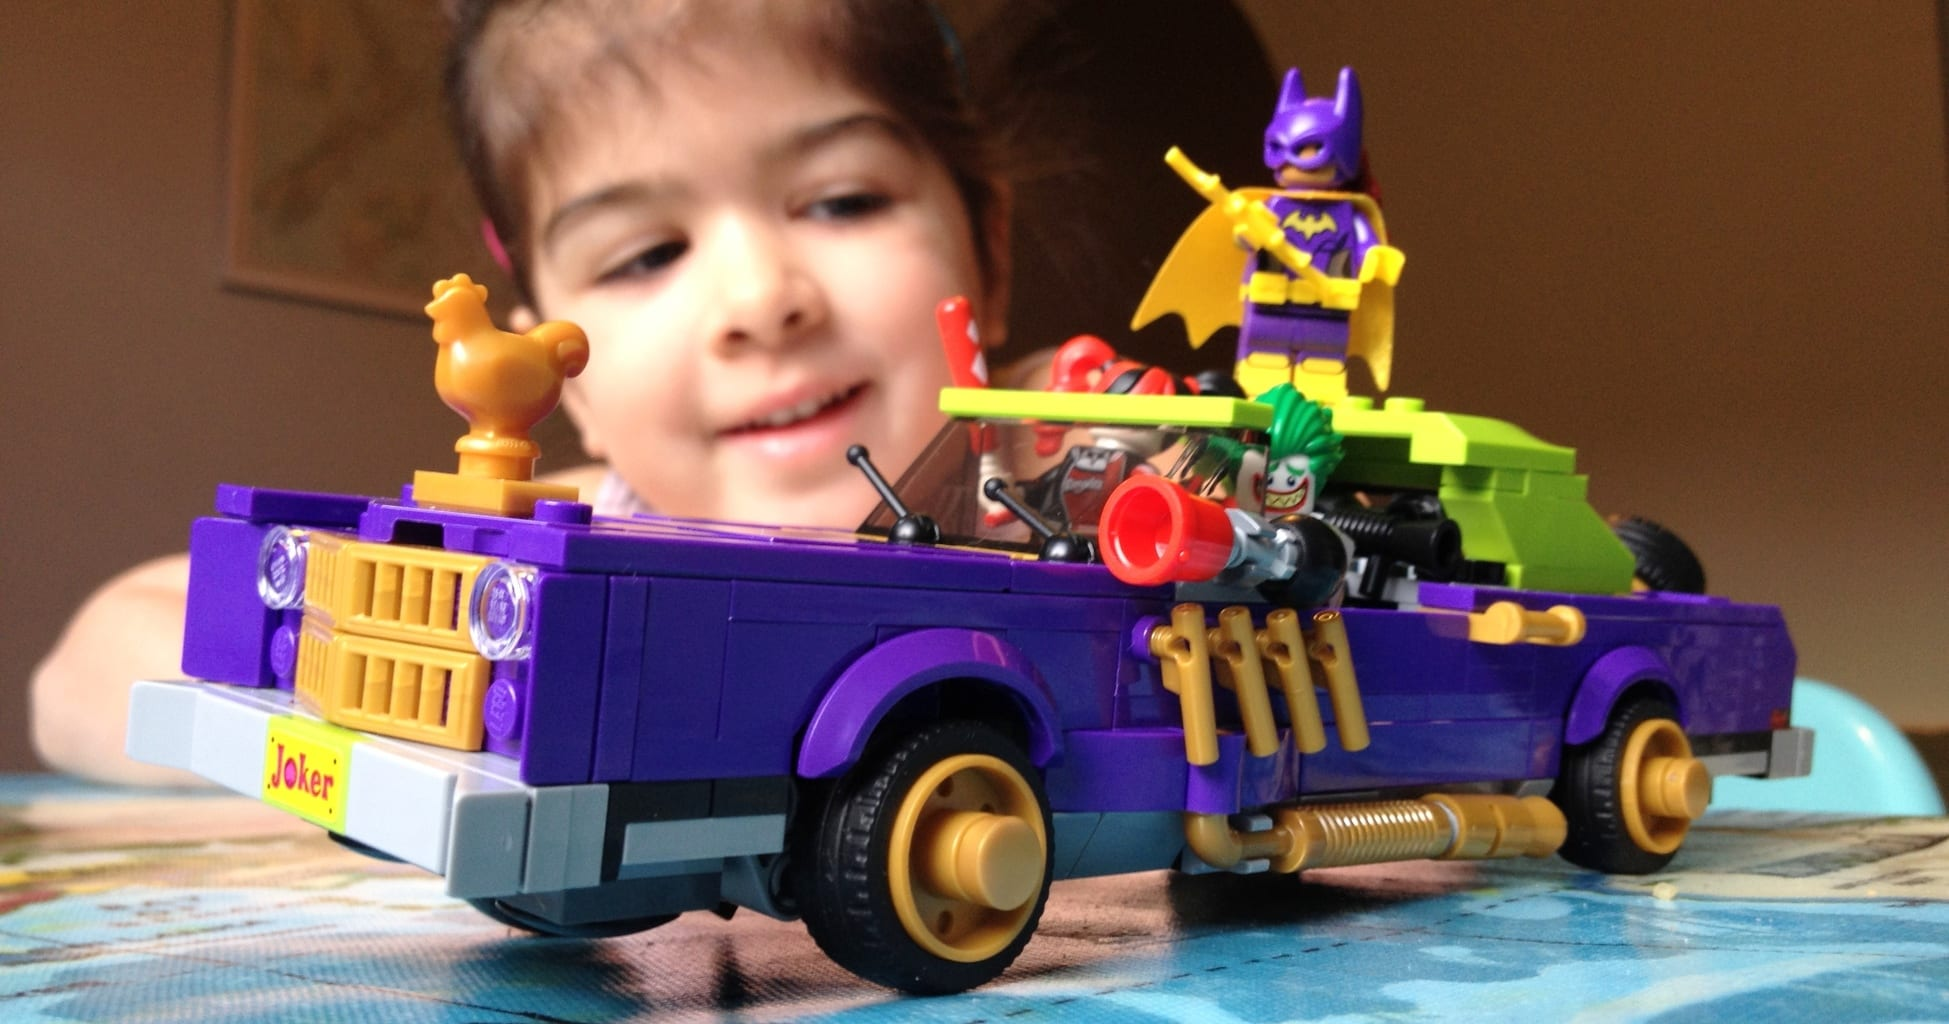 The Lego Batman Movie The Joker Notorious Lowrider Set 70906